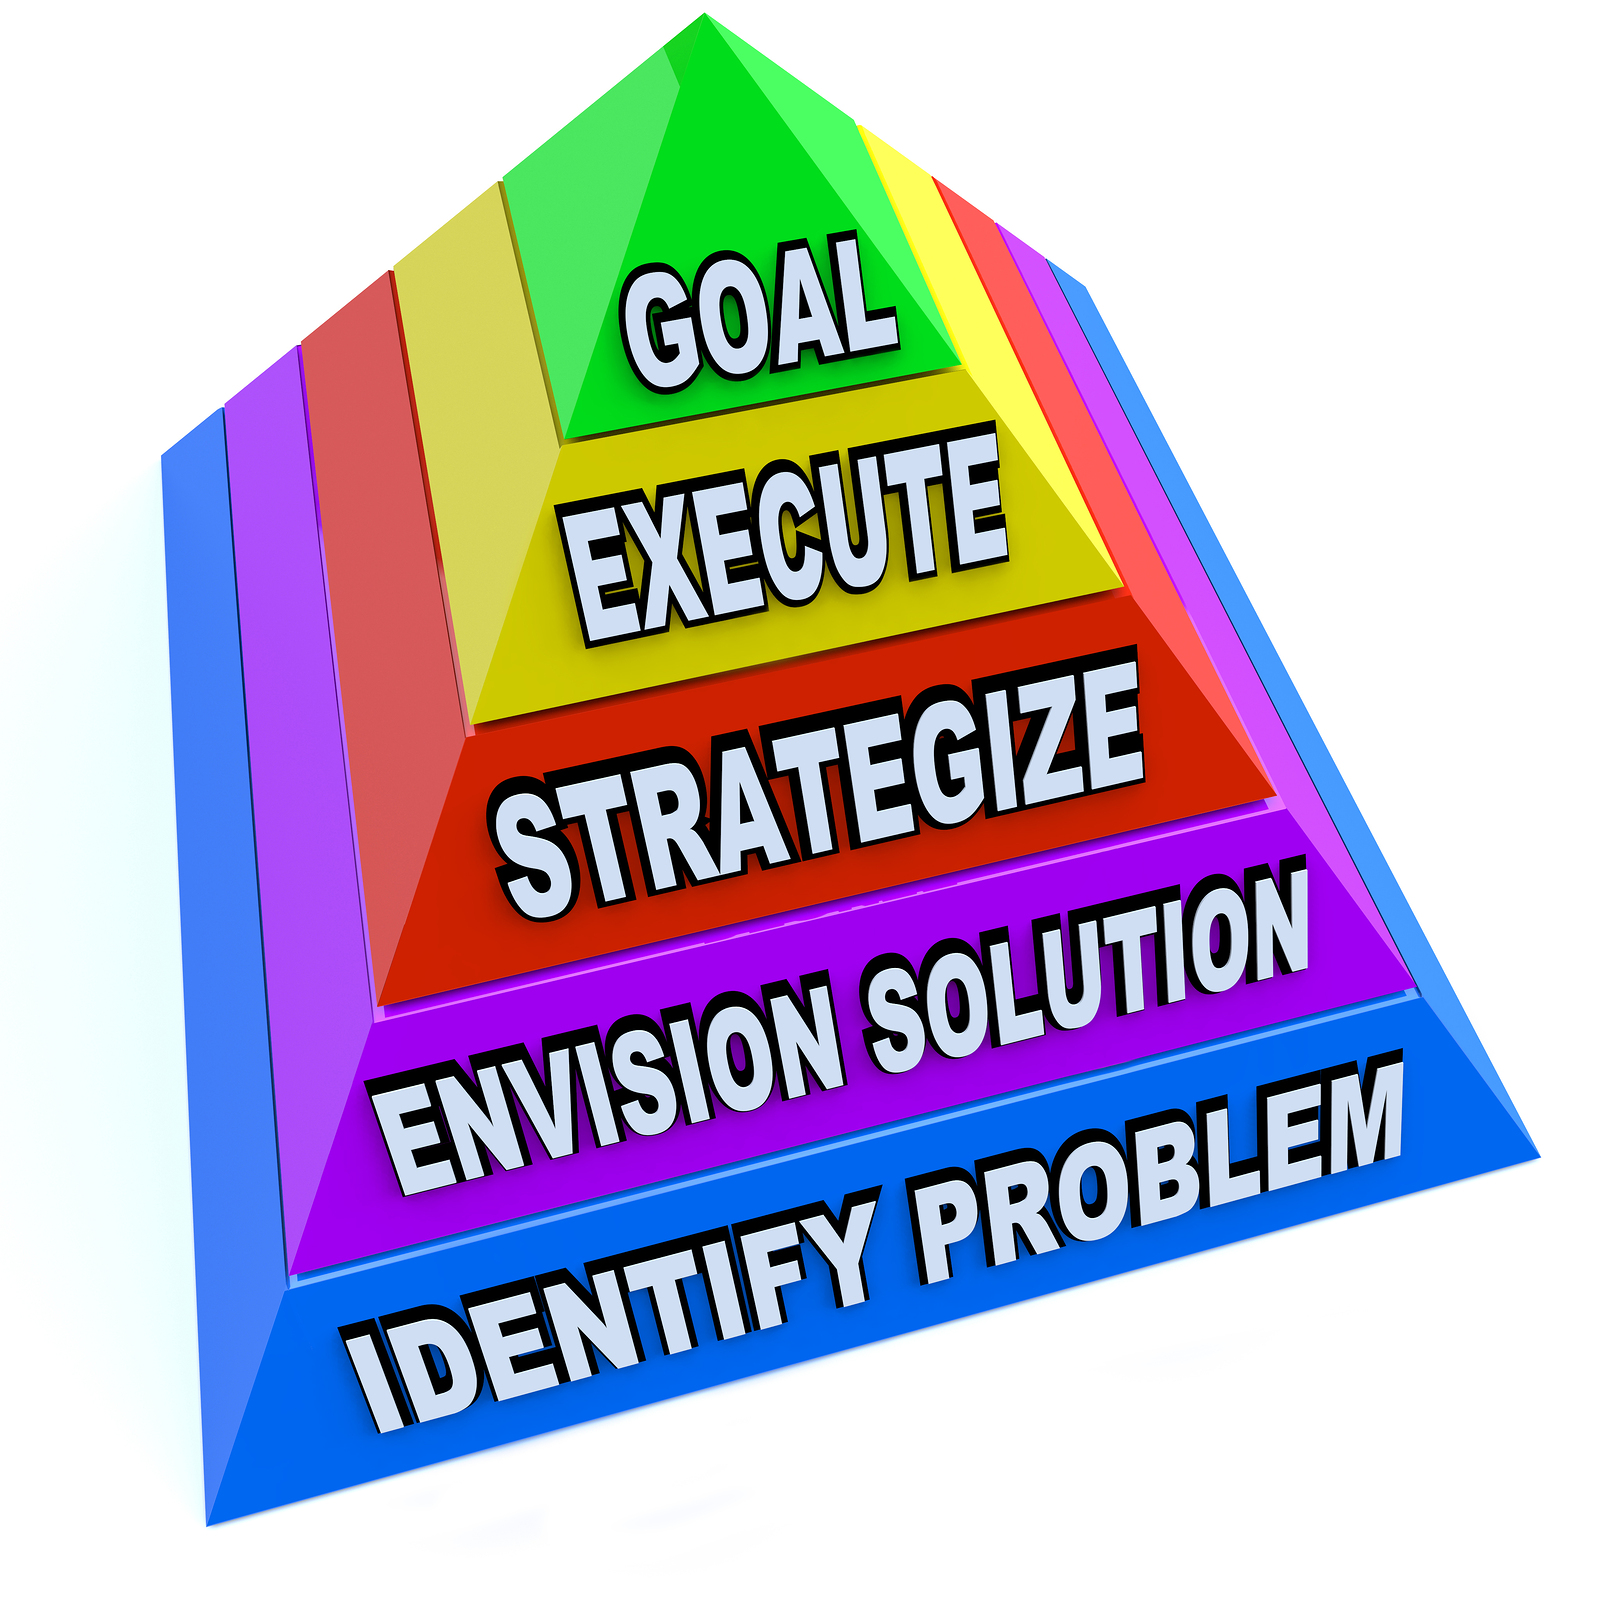 sean knows technology an overview about strategic planning one approach recommends having short term goals medium term goals and long term goals in this model one can expect to attain short term goals fairly